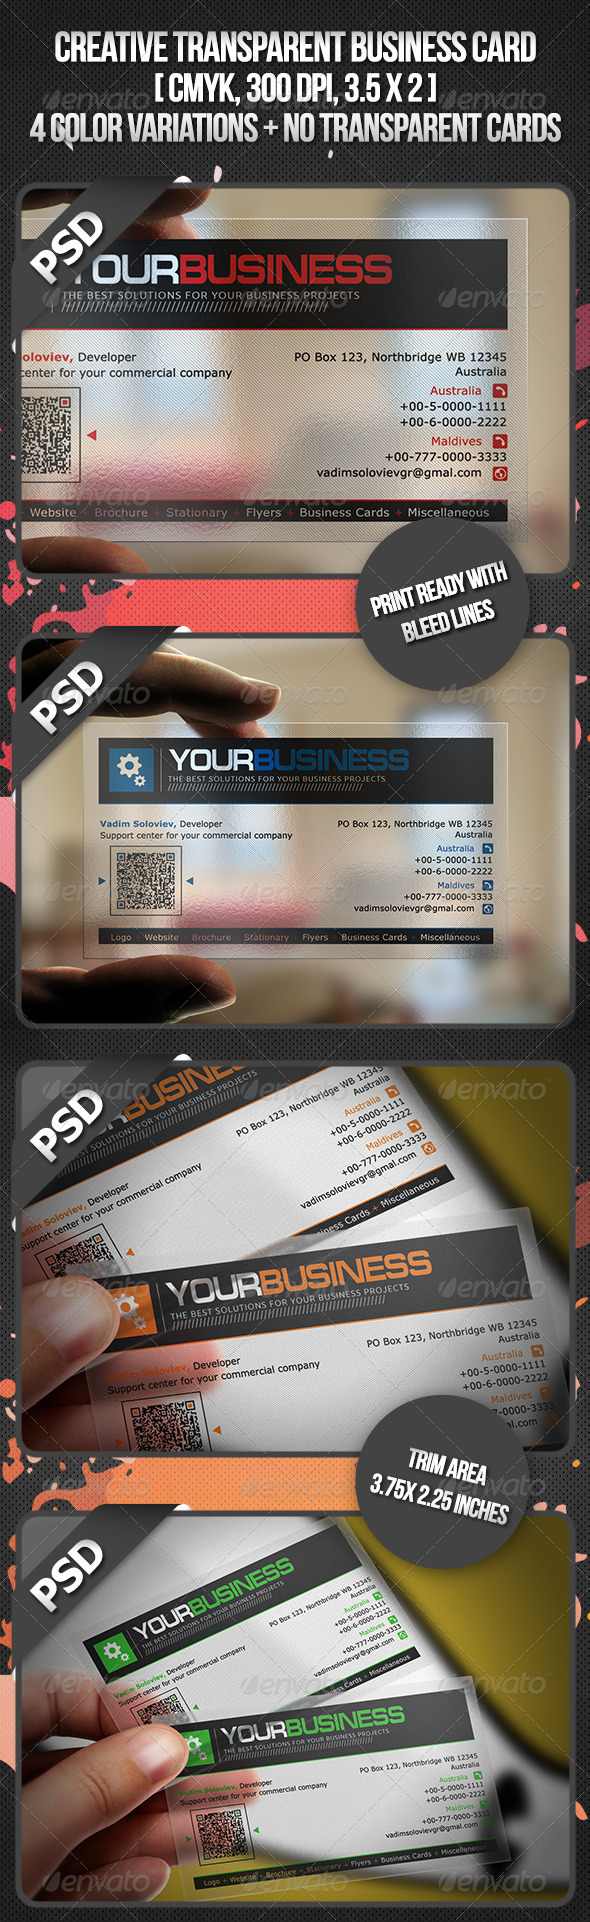 Creative Transparent Business Card - Creative Business Cards